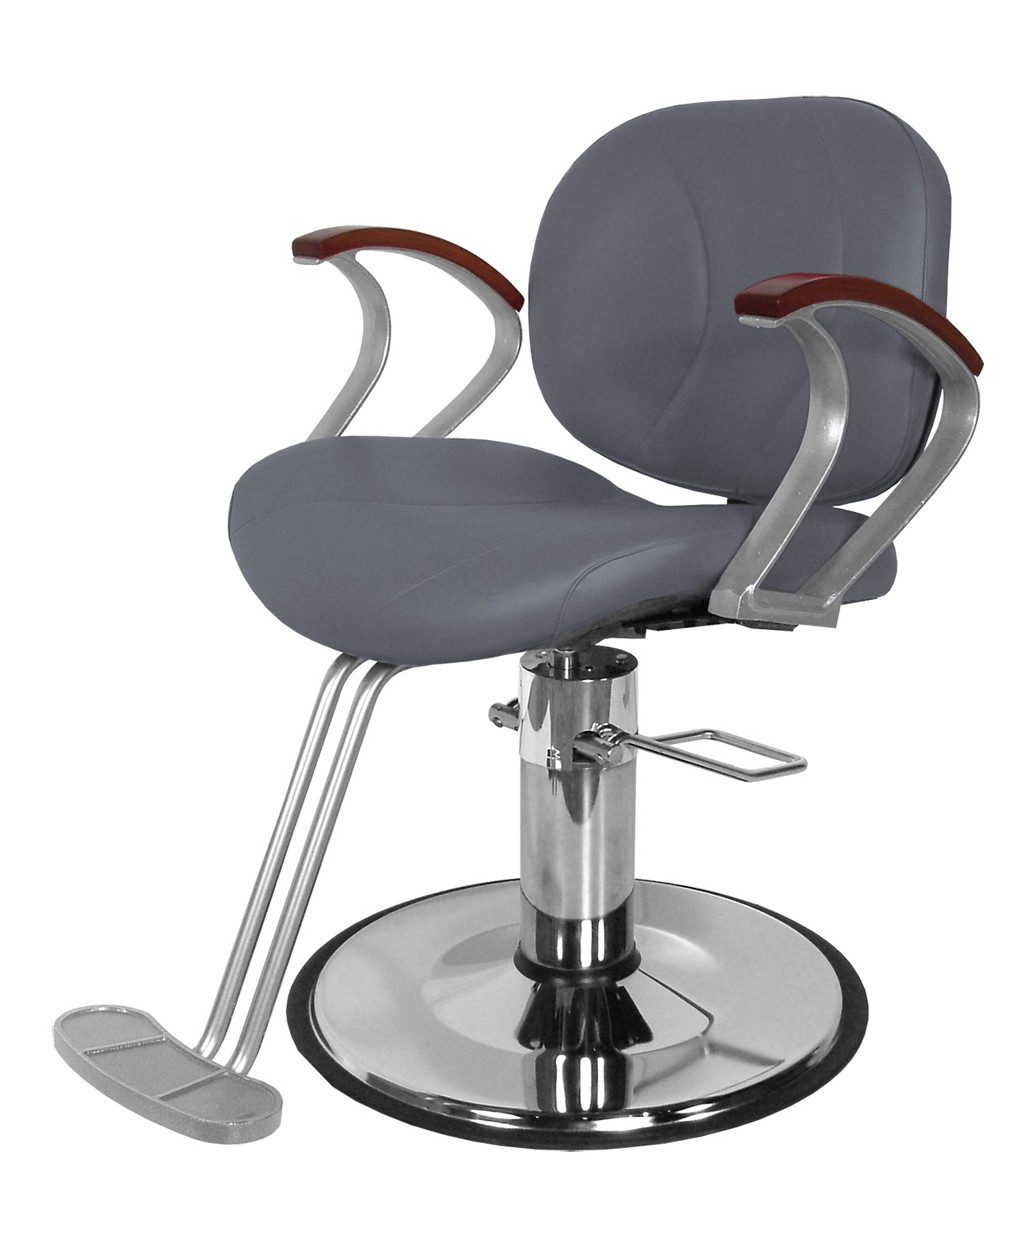 Hydraulic Styling Chair Collins 5500 Belize Styling Chair